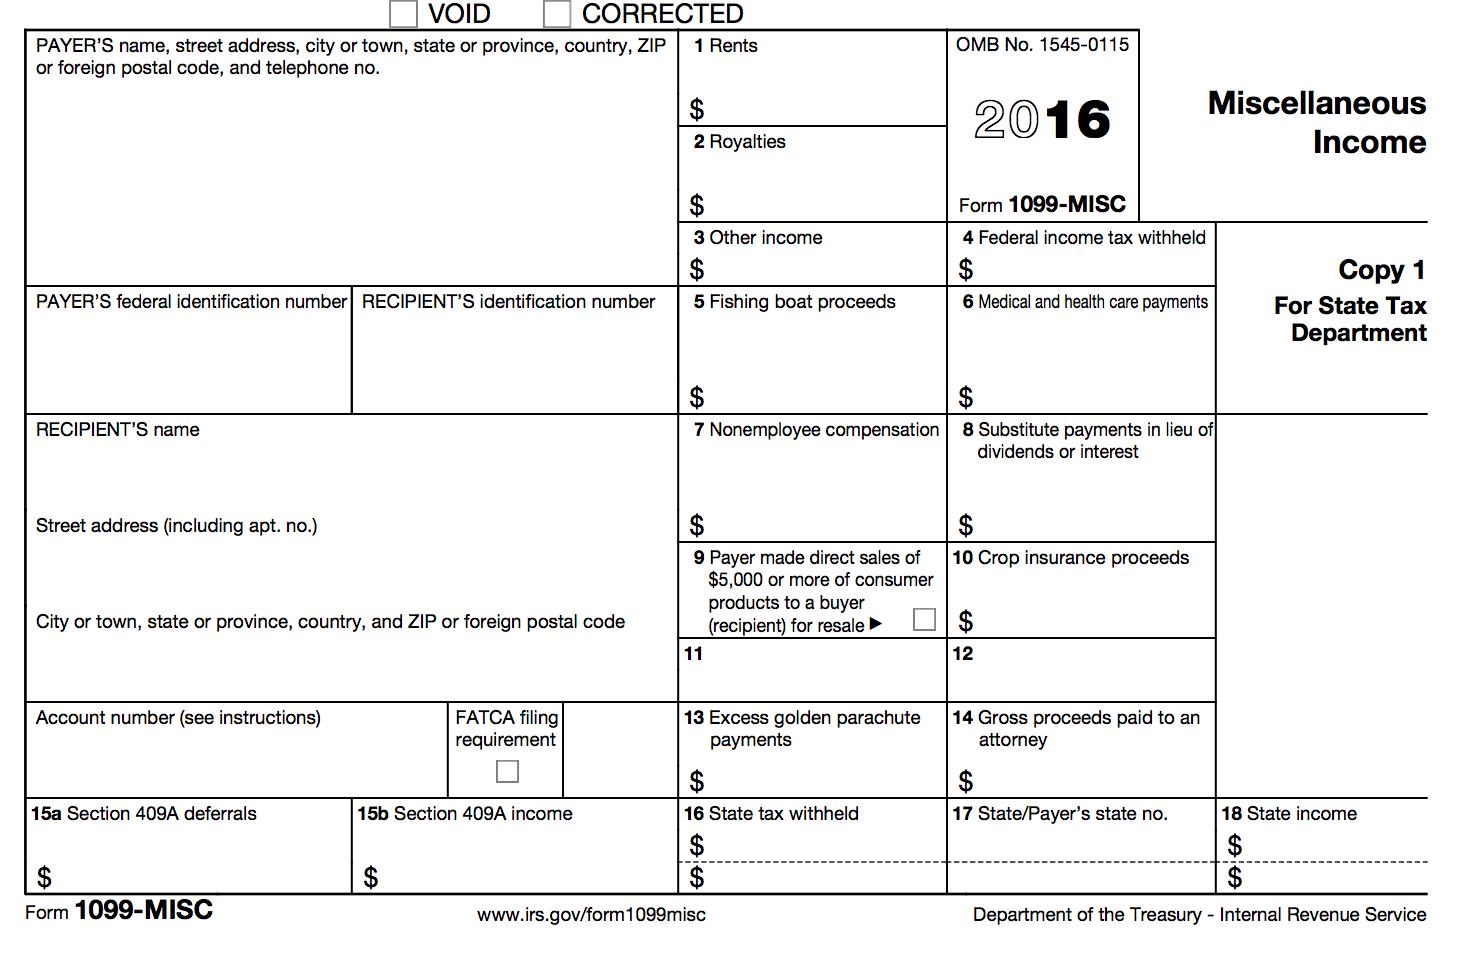 IRS Form 1099-MISC